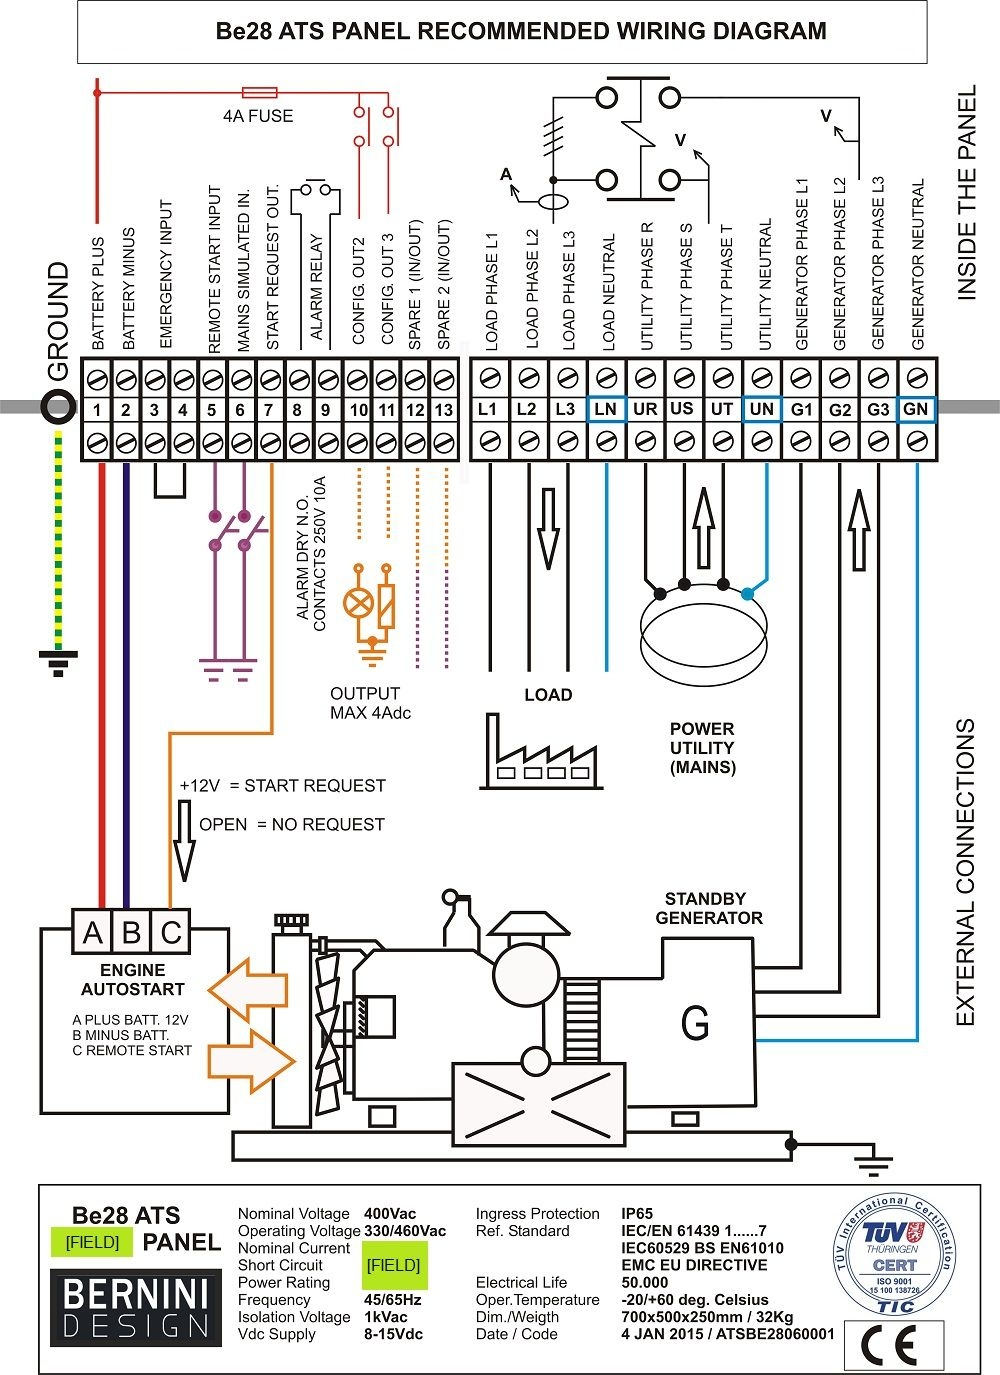 cummins transfer switch wiring diagram Download-transfer switch wiring diagram Generac Automatic Transfer Switch Wiring Diagram Throughout Free With 17-m